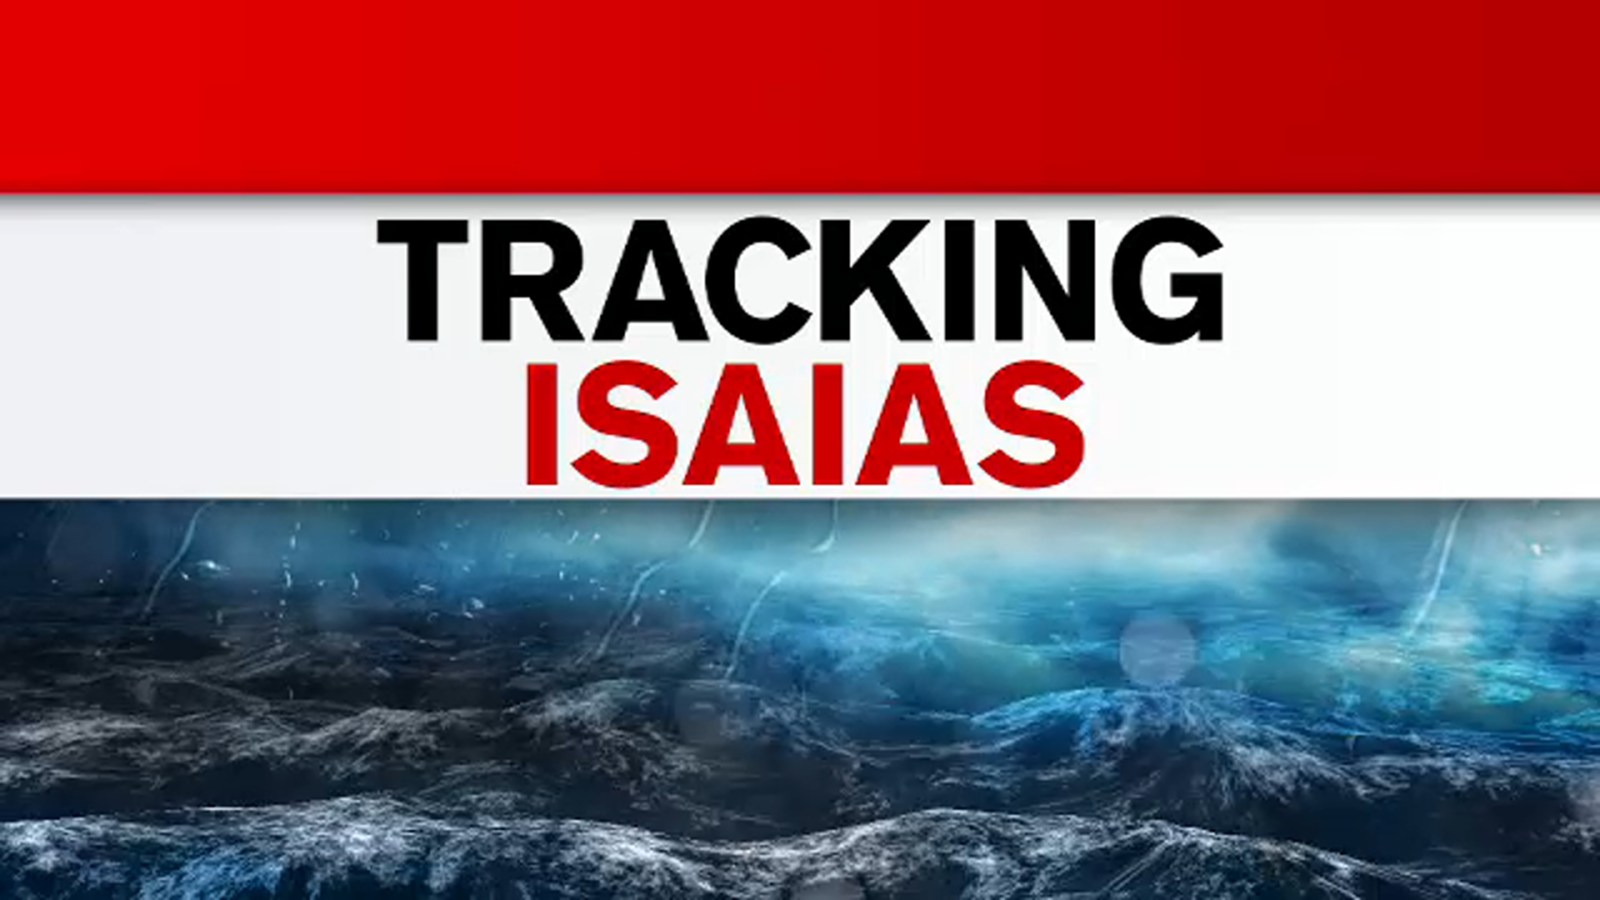 Hurricane Isaias Track Warning Issued For Florida